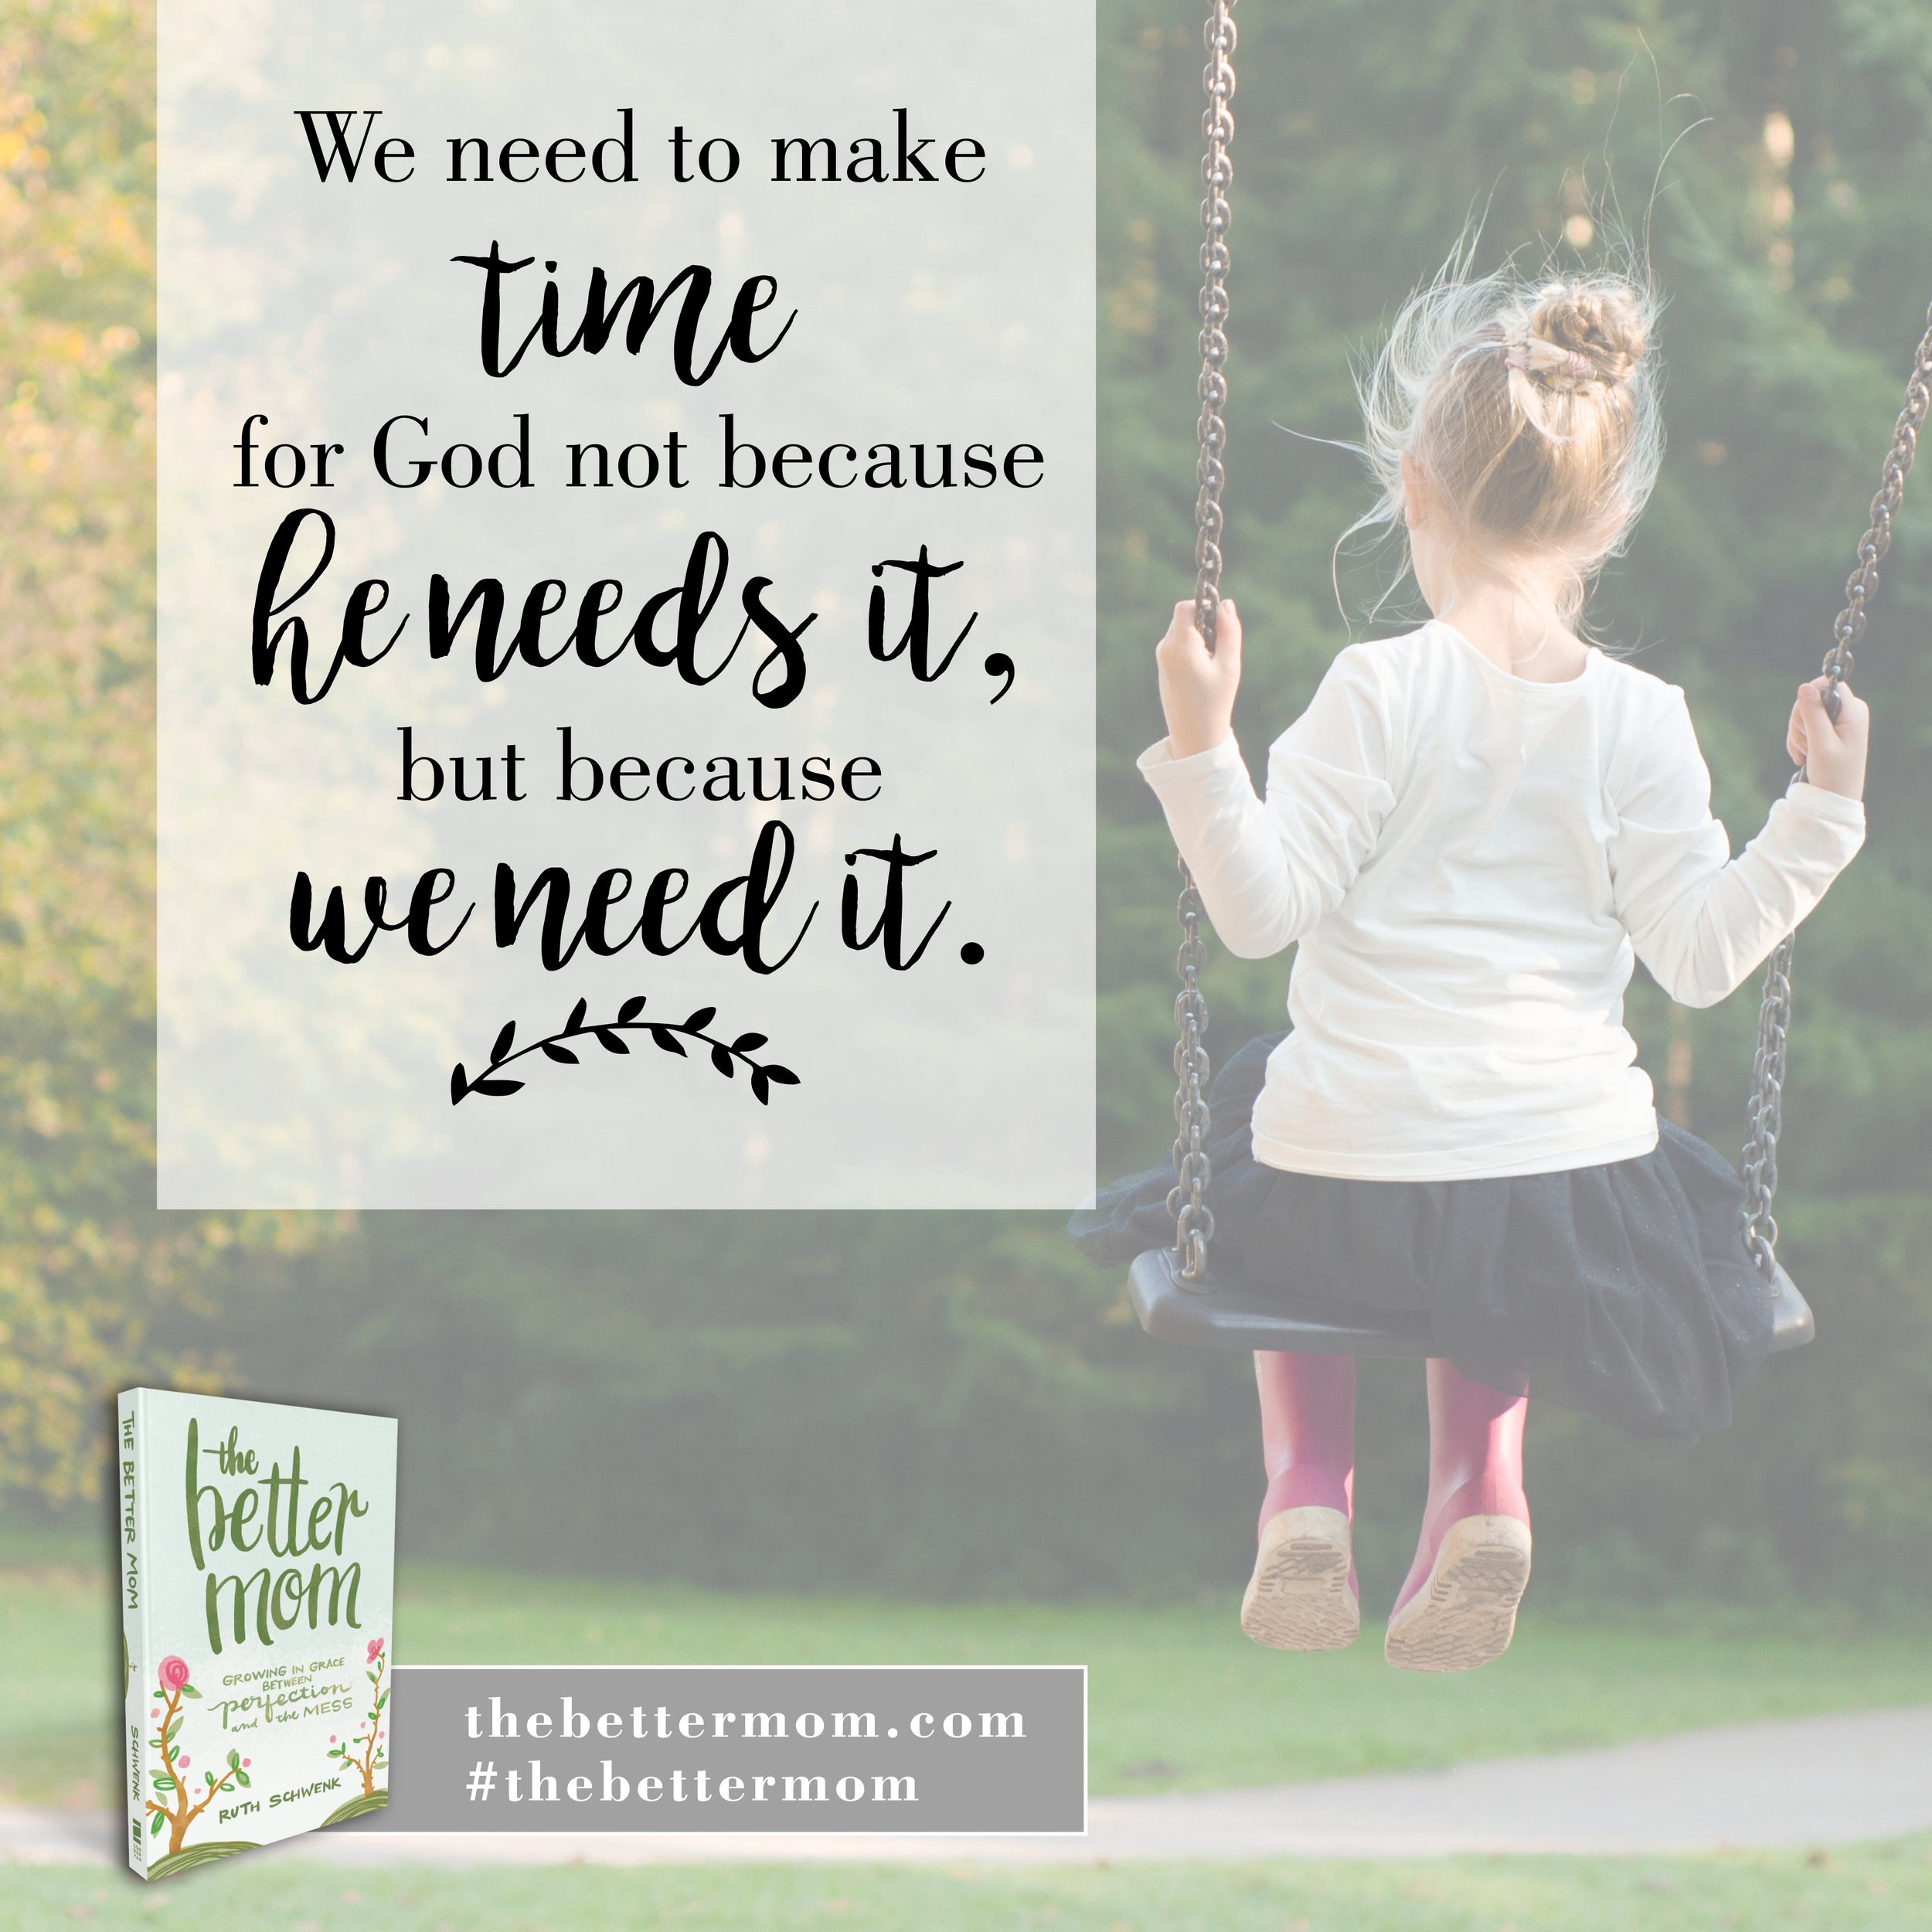 Moms, what our hearts need most is time carved out for God. He is shaping us through our experiences and we need time to hear from him and talk to him about who we are becoming. Join me and thousands of other moms today, as we learn to grow in grace between perfection and the mess.   #thebettermom